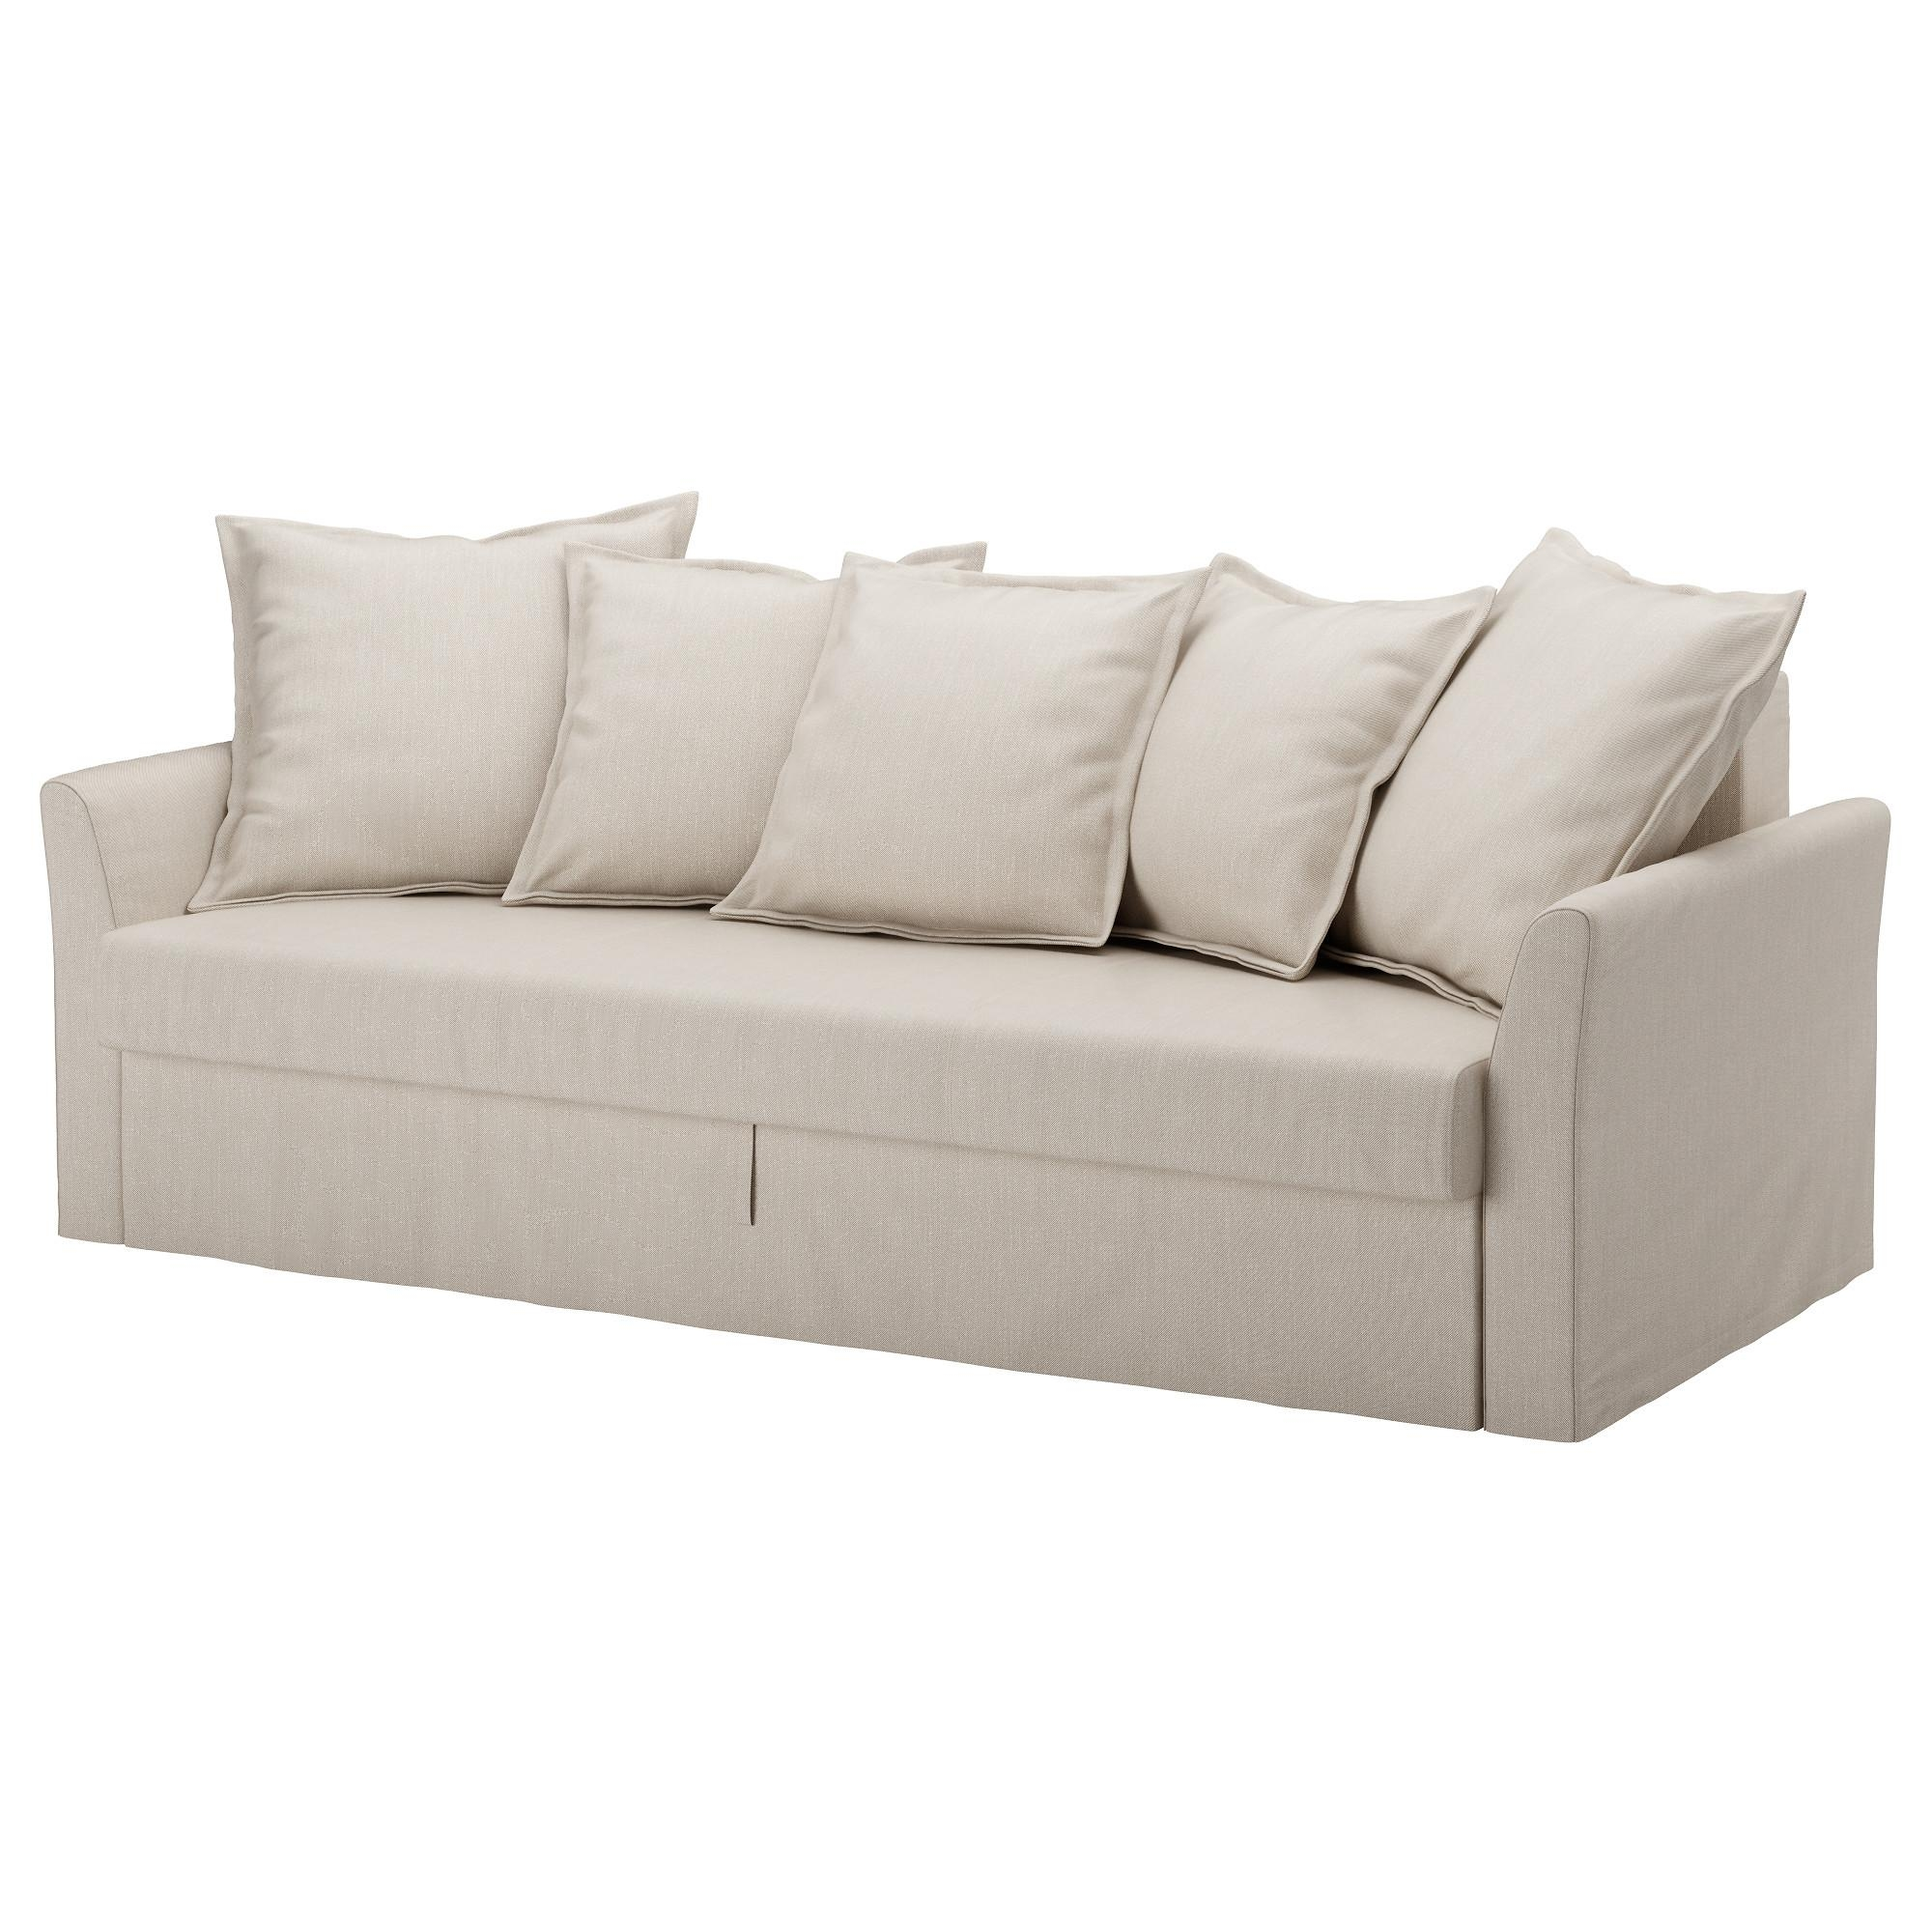 Holmsund Sleeper Sofa – Ransta Light Pink – Ikea Pertaining To Slipcovers For 3 Cushion Sofas (Image 8 of 20)